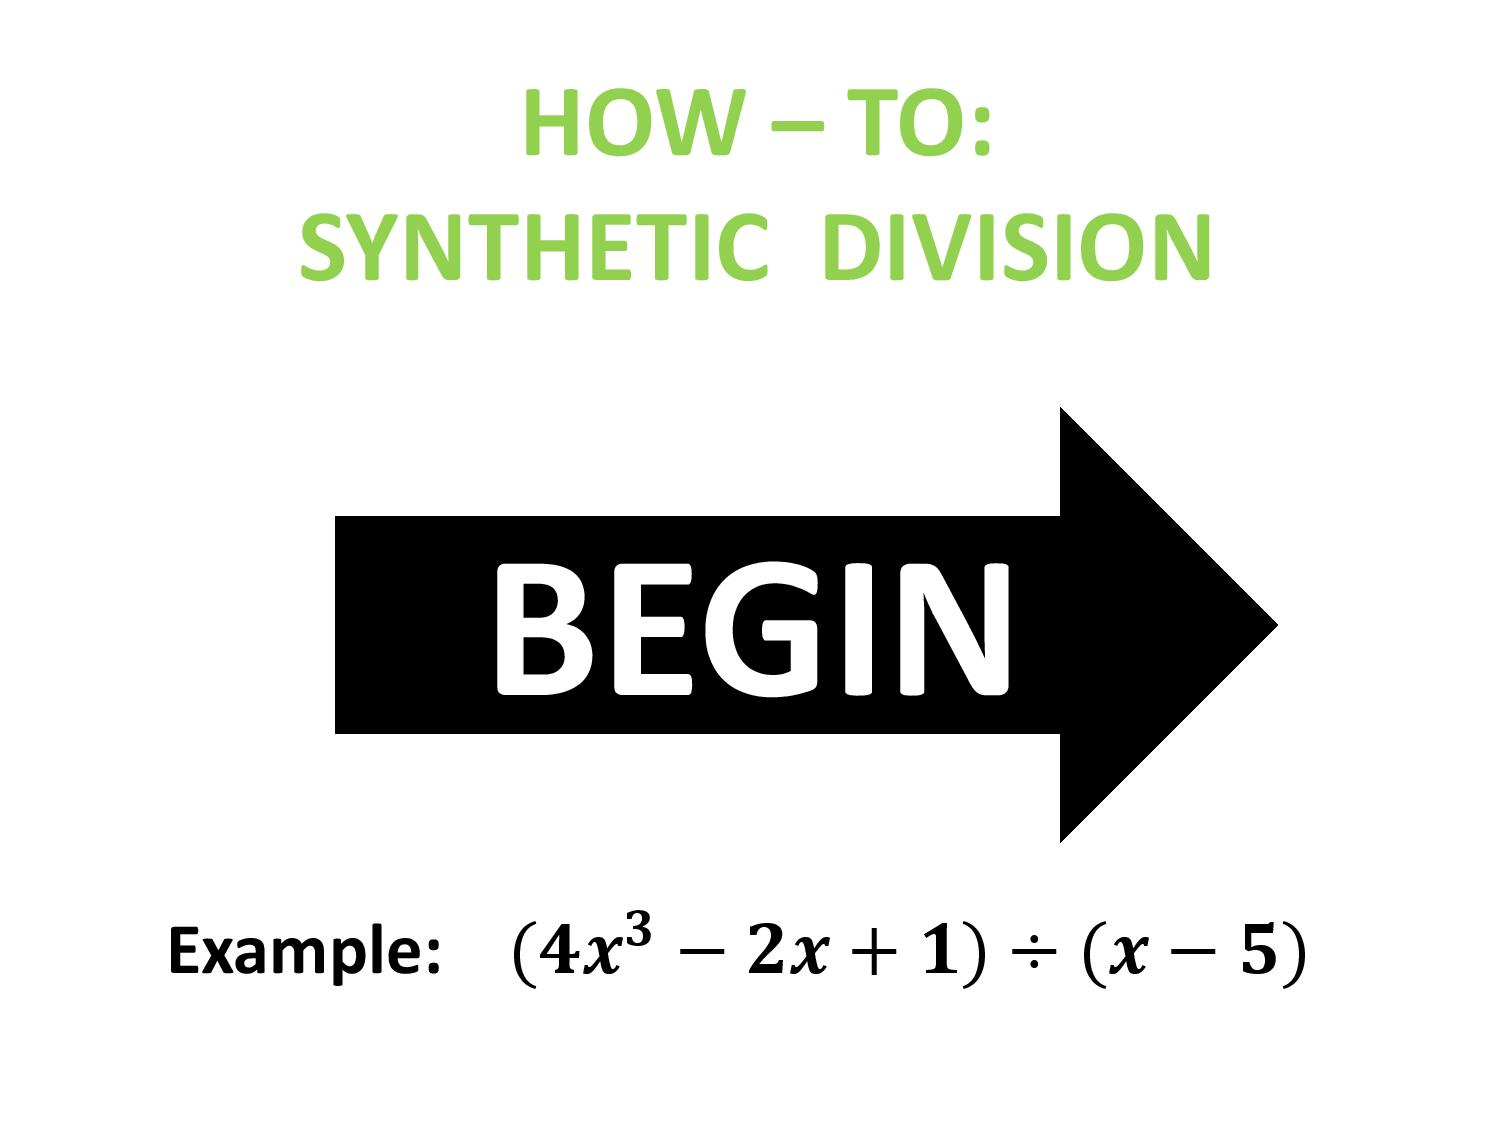 synthetic-division-how-to-page-001